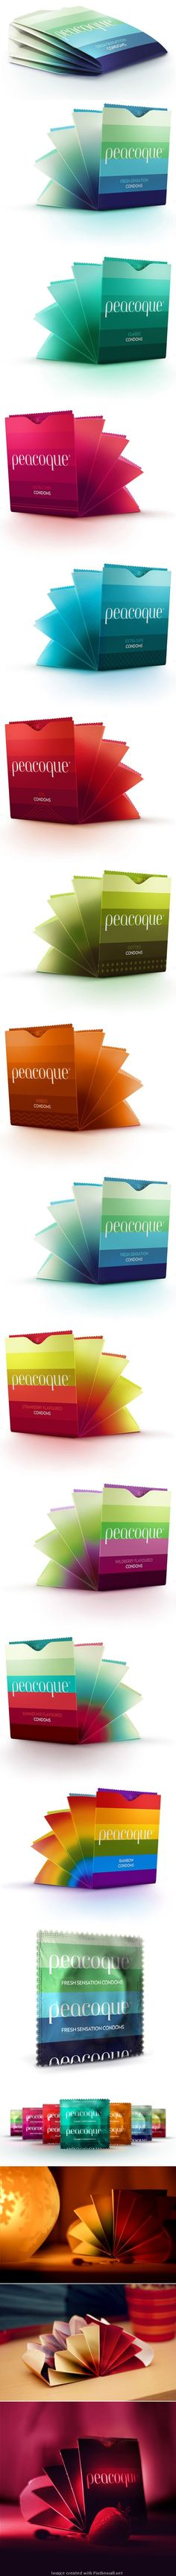 Peacoque - Innovative Condom Packaging by Petar Pavlov. Yes, it's true #2013 #toppin PD